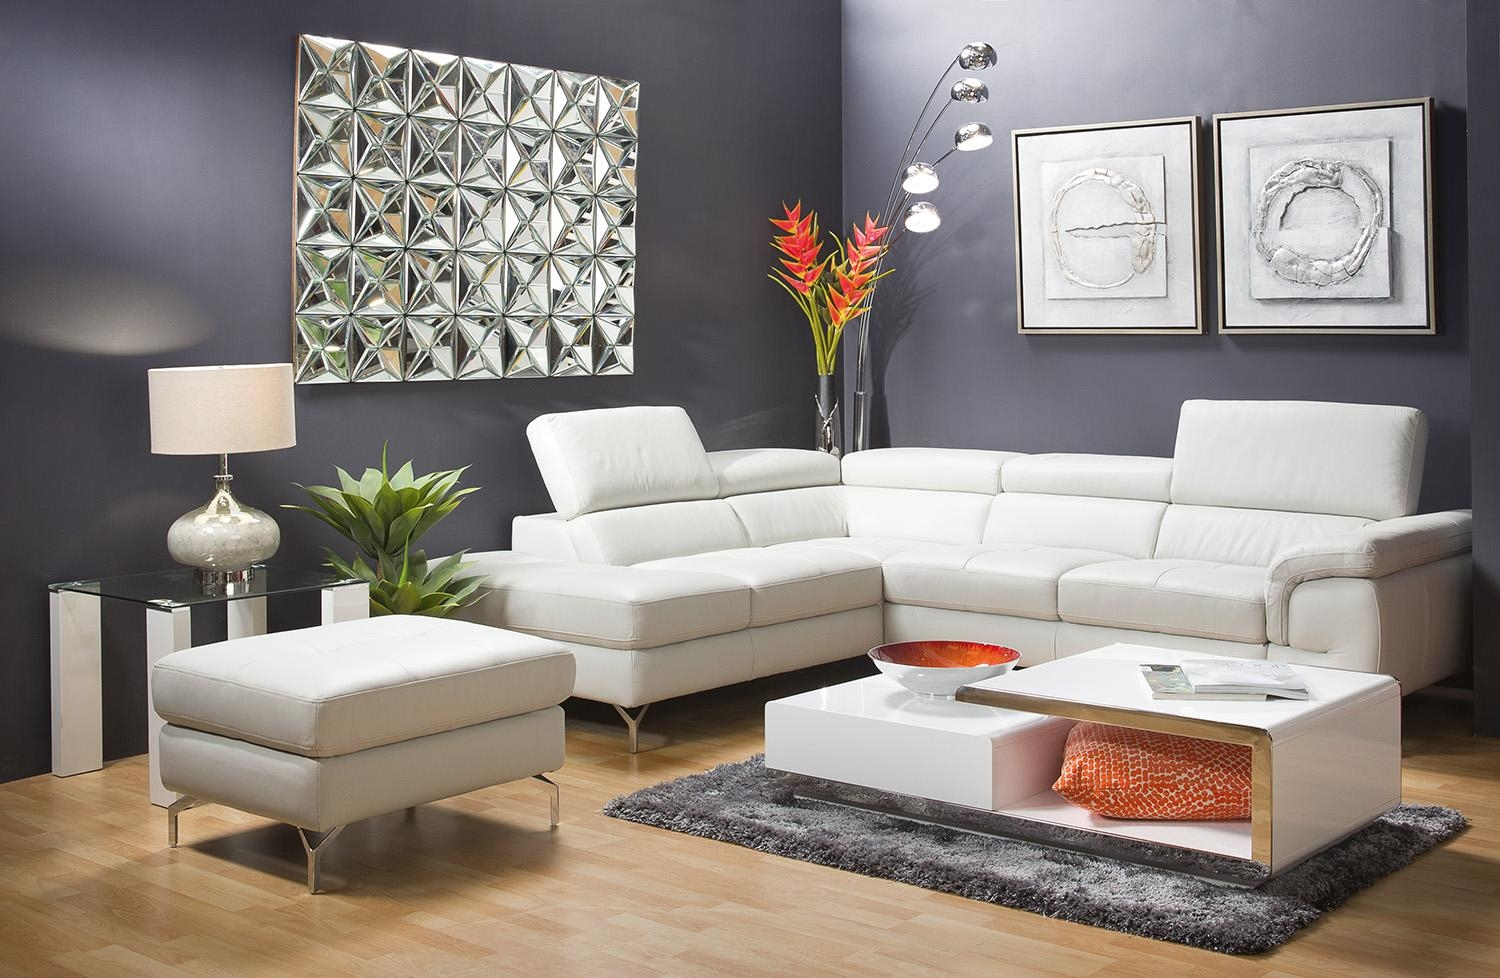 Leather Lounge Sofa ~ Hmmi Within Leather Lounge Sofas (View 14 of 20)